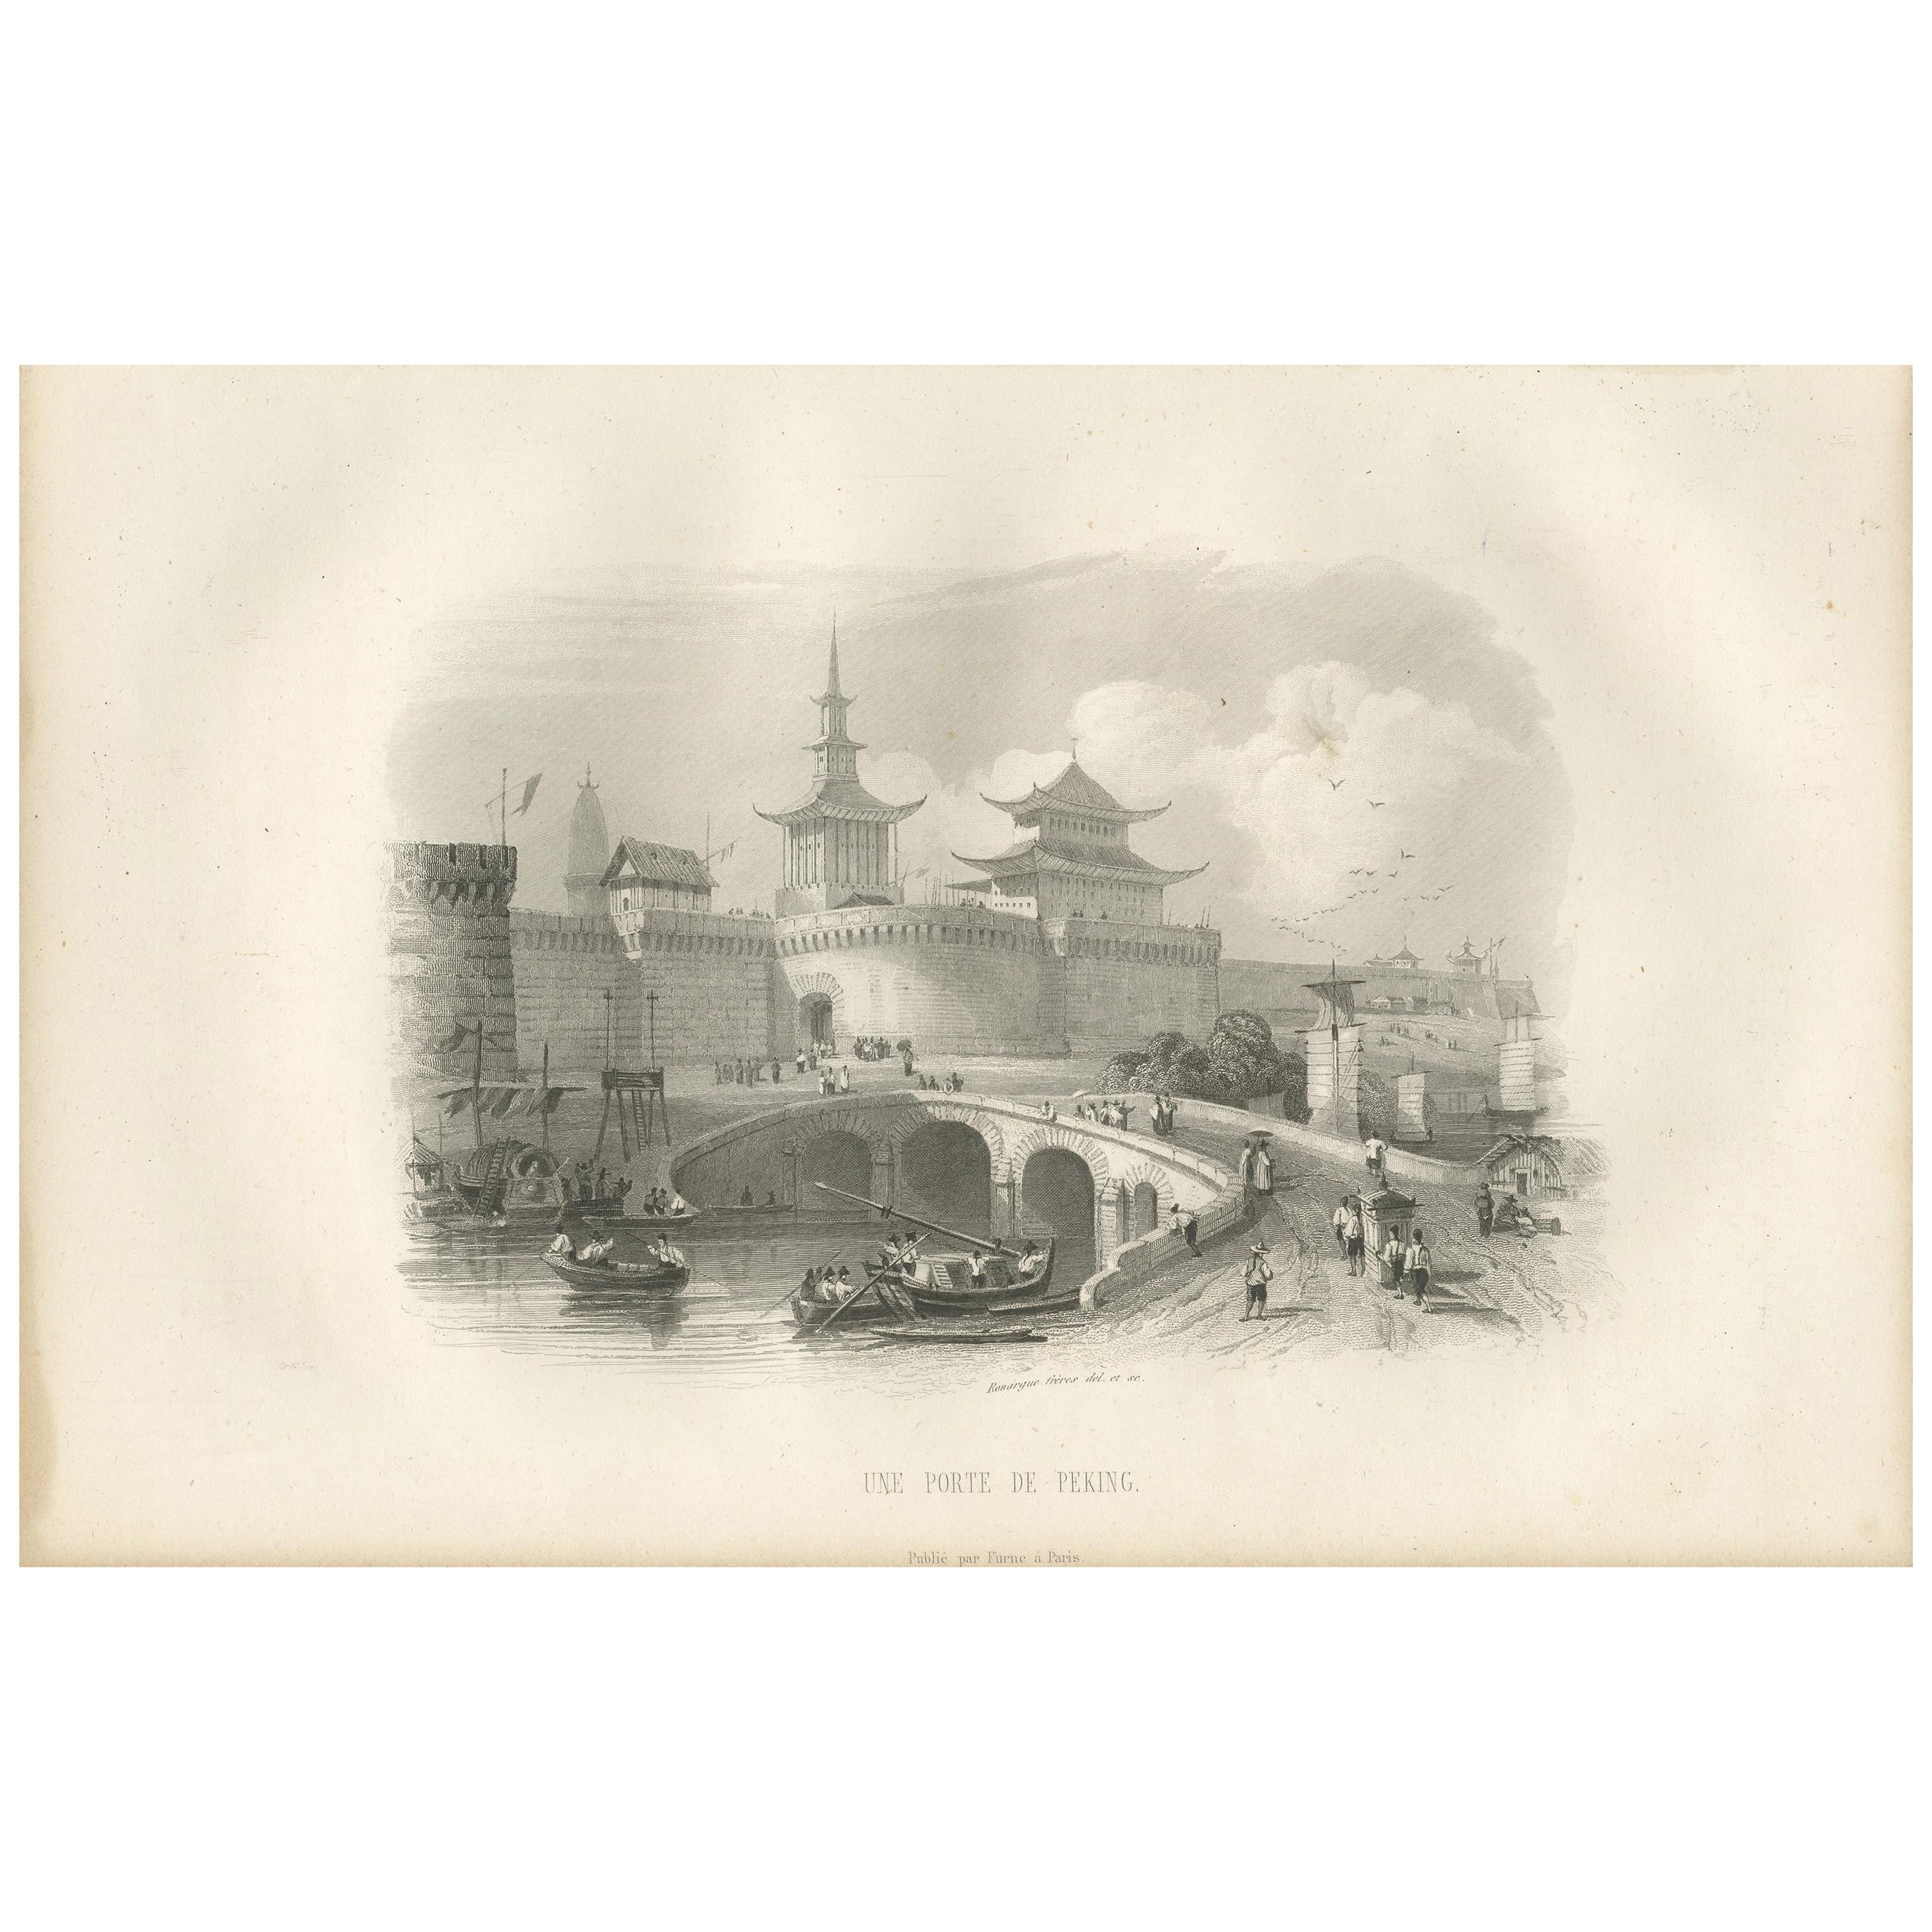 Antique Print with a View of Beijing by D'Urville, 1853